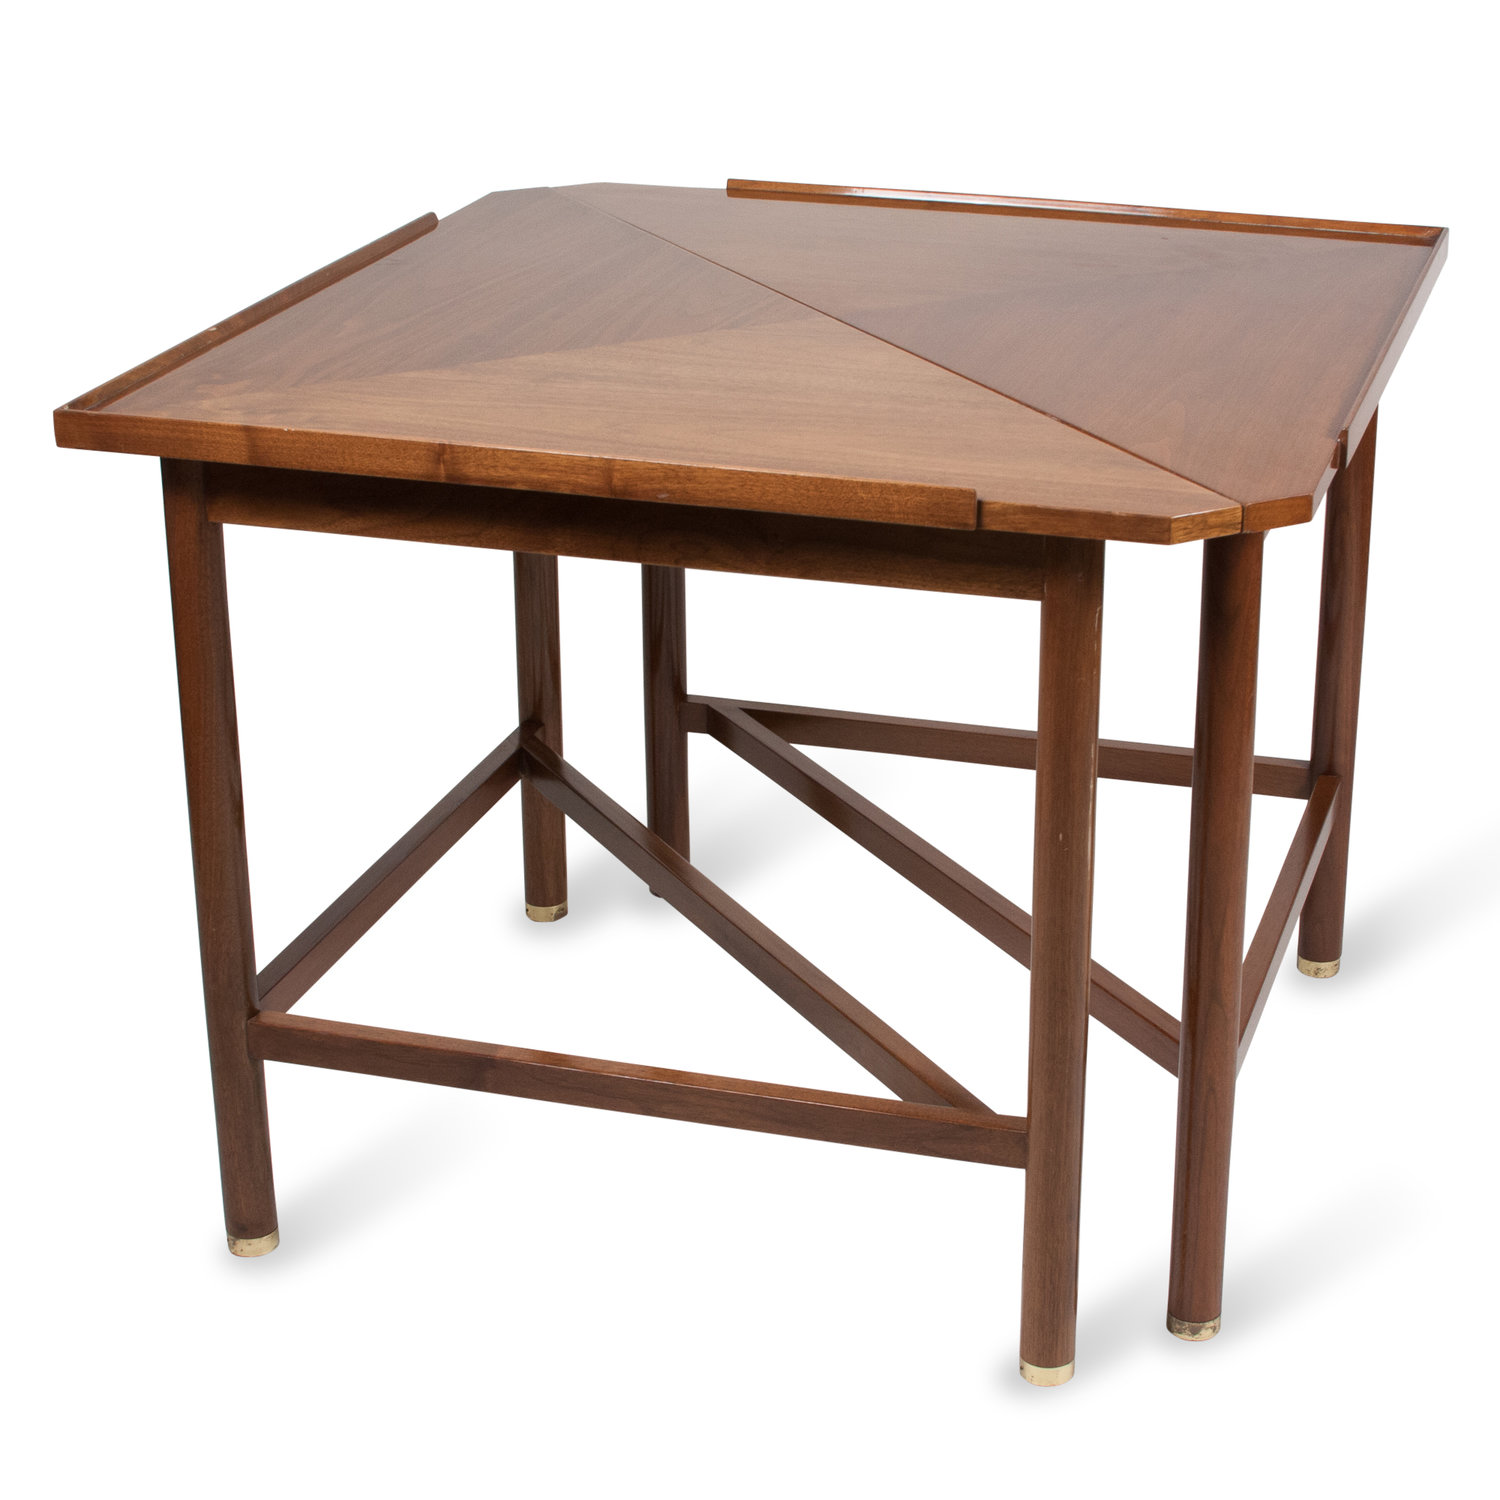 pair of triangular mahogany end tables by ed wormley — jon howell - pair of triangular mahogany end tables by ed wormley